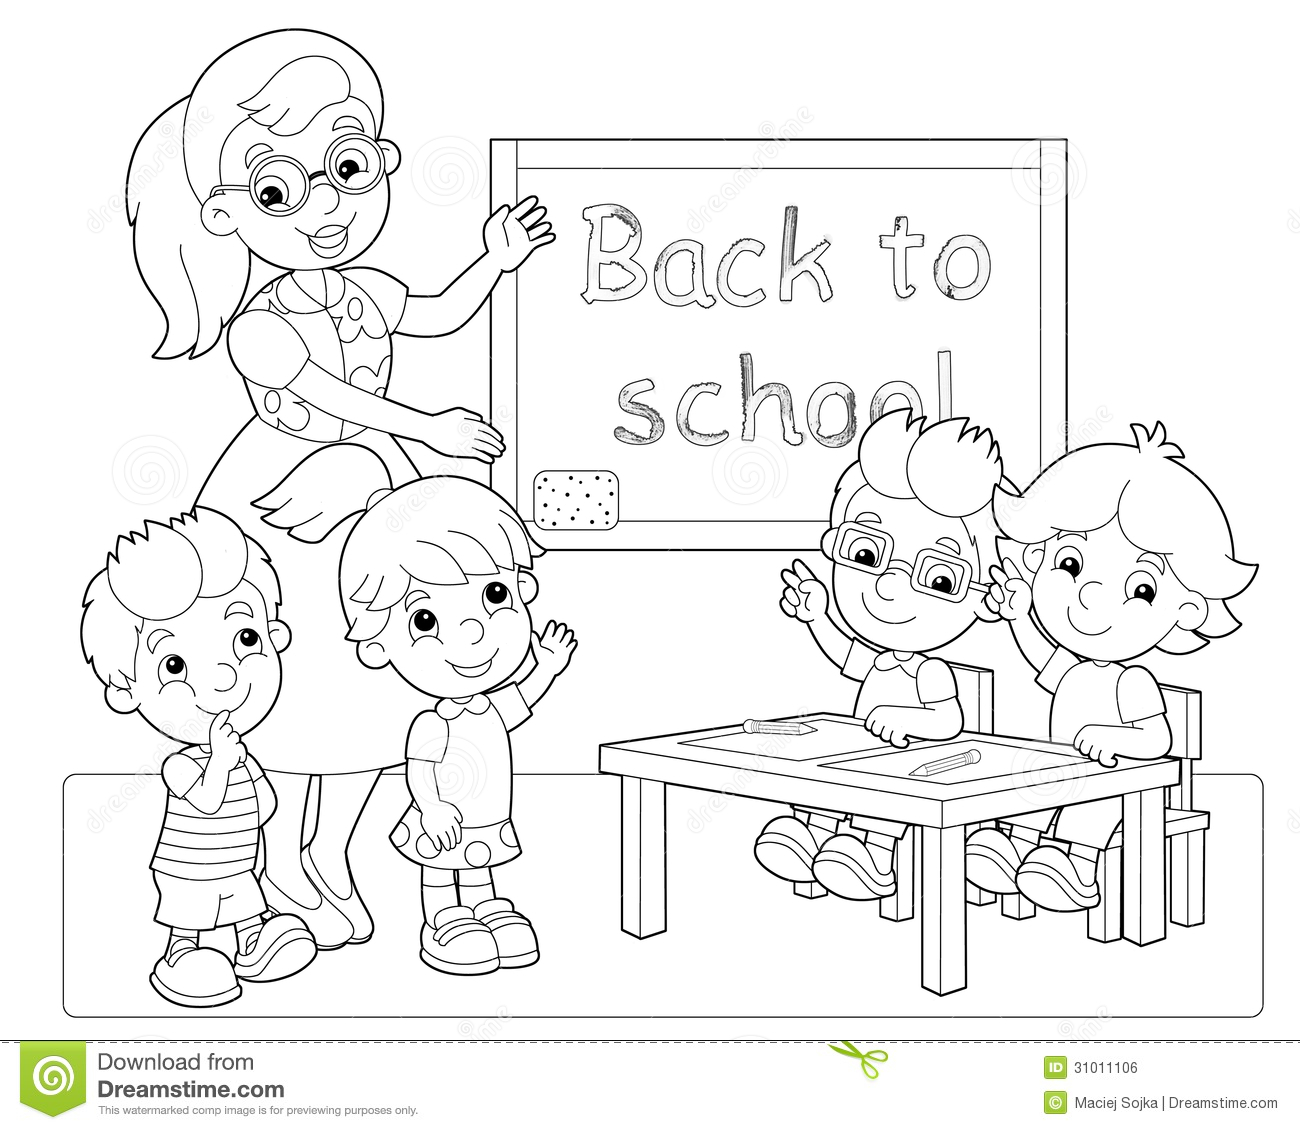 kids coloring book connected kids coloring book download the - Coloring Pictures Of Kids